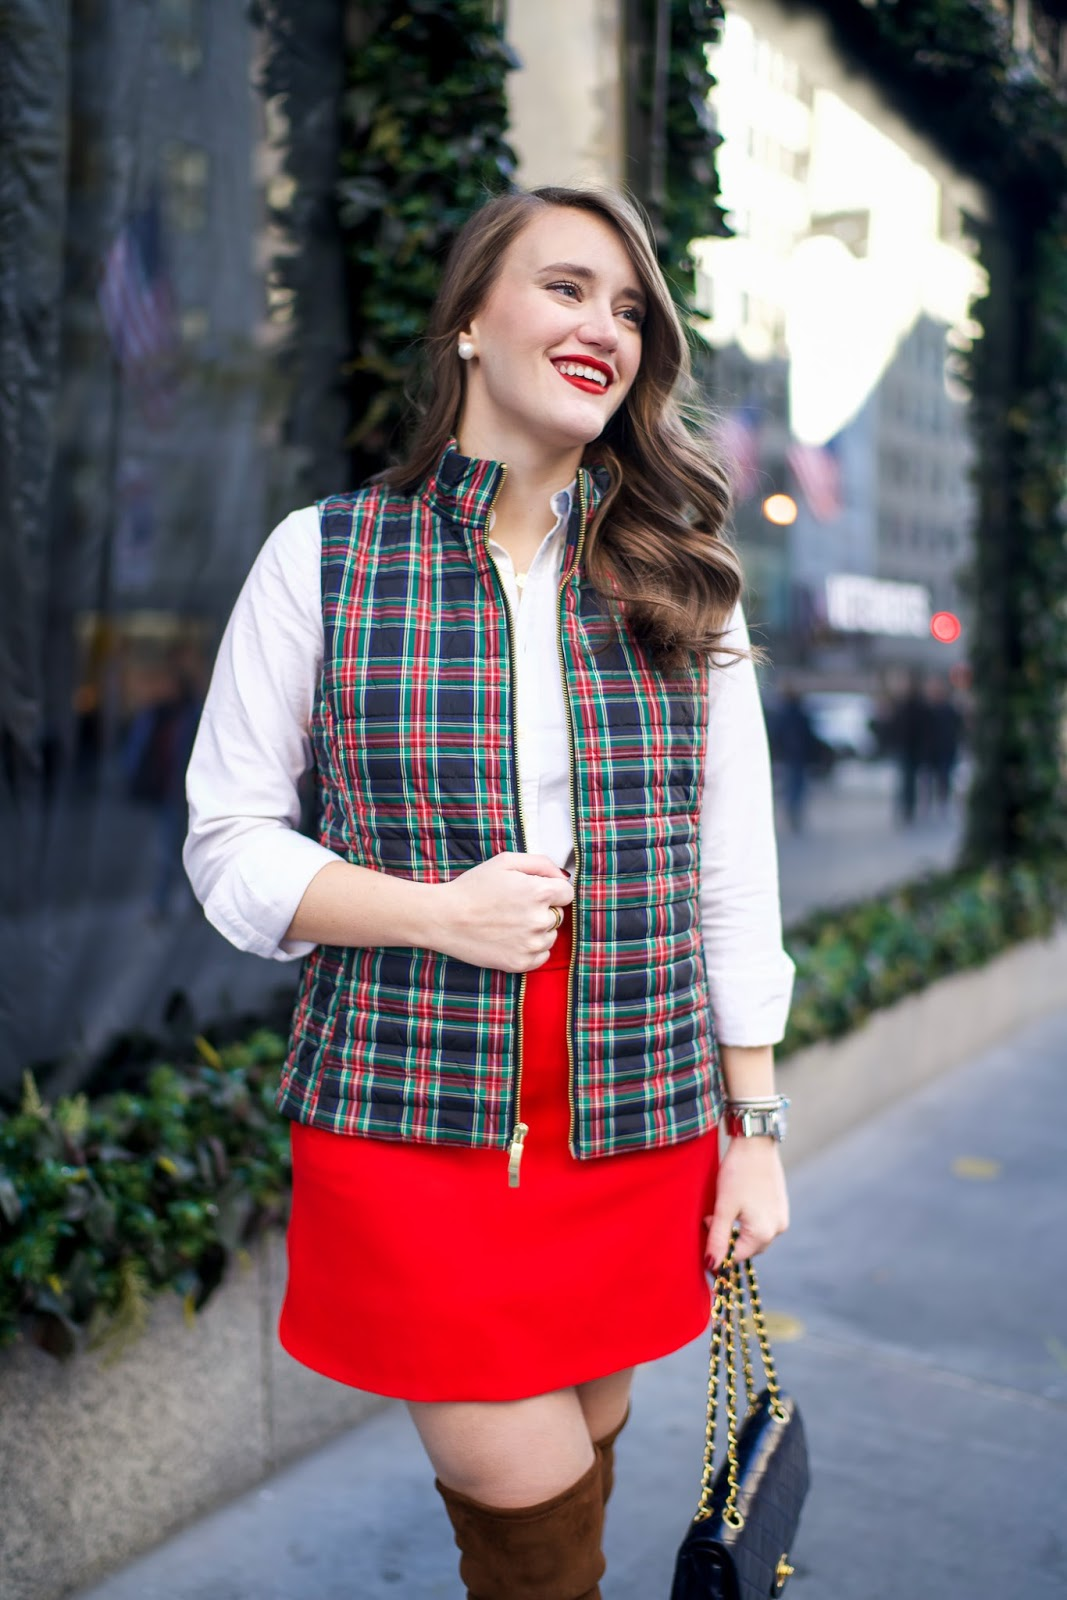 red skirts, plaid vests